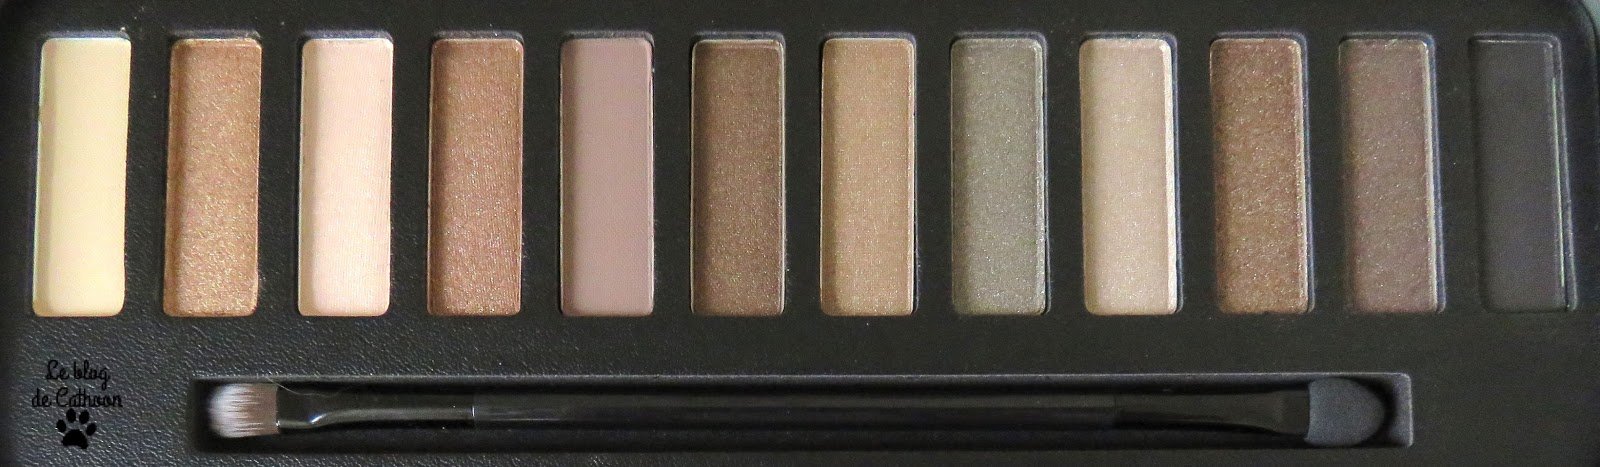 Color Me Buff - Natural Nudes - Eyes Color Palette - W7